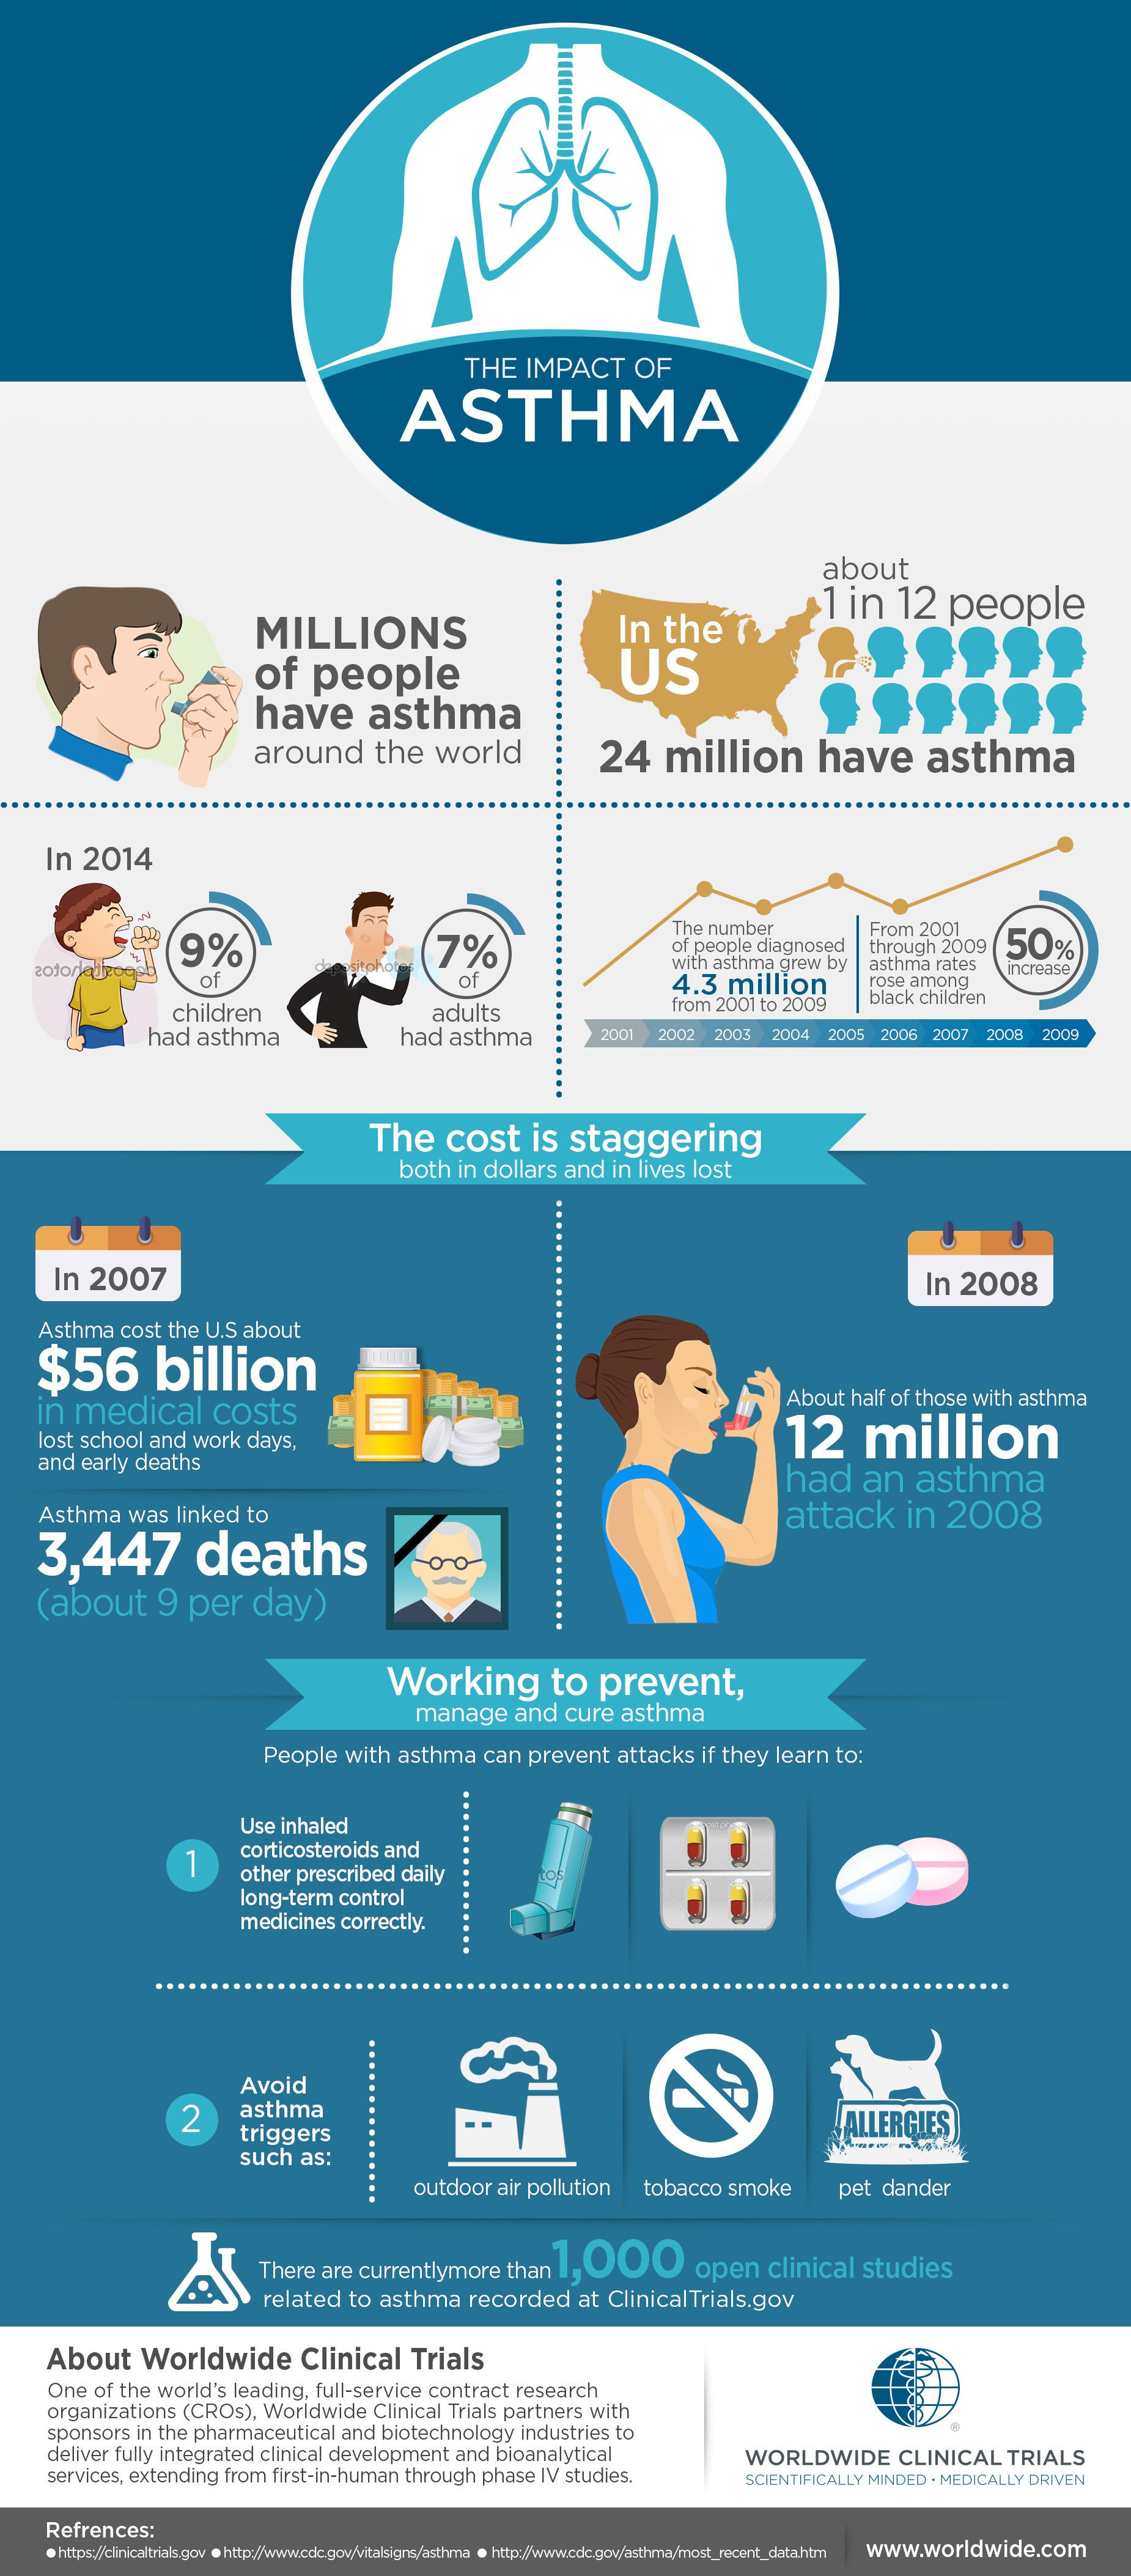 Worldwide Clinical Trials -- Create a creative infographic for Asthma Awareness